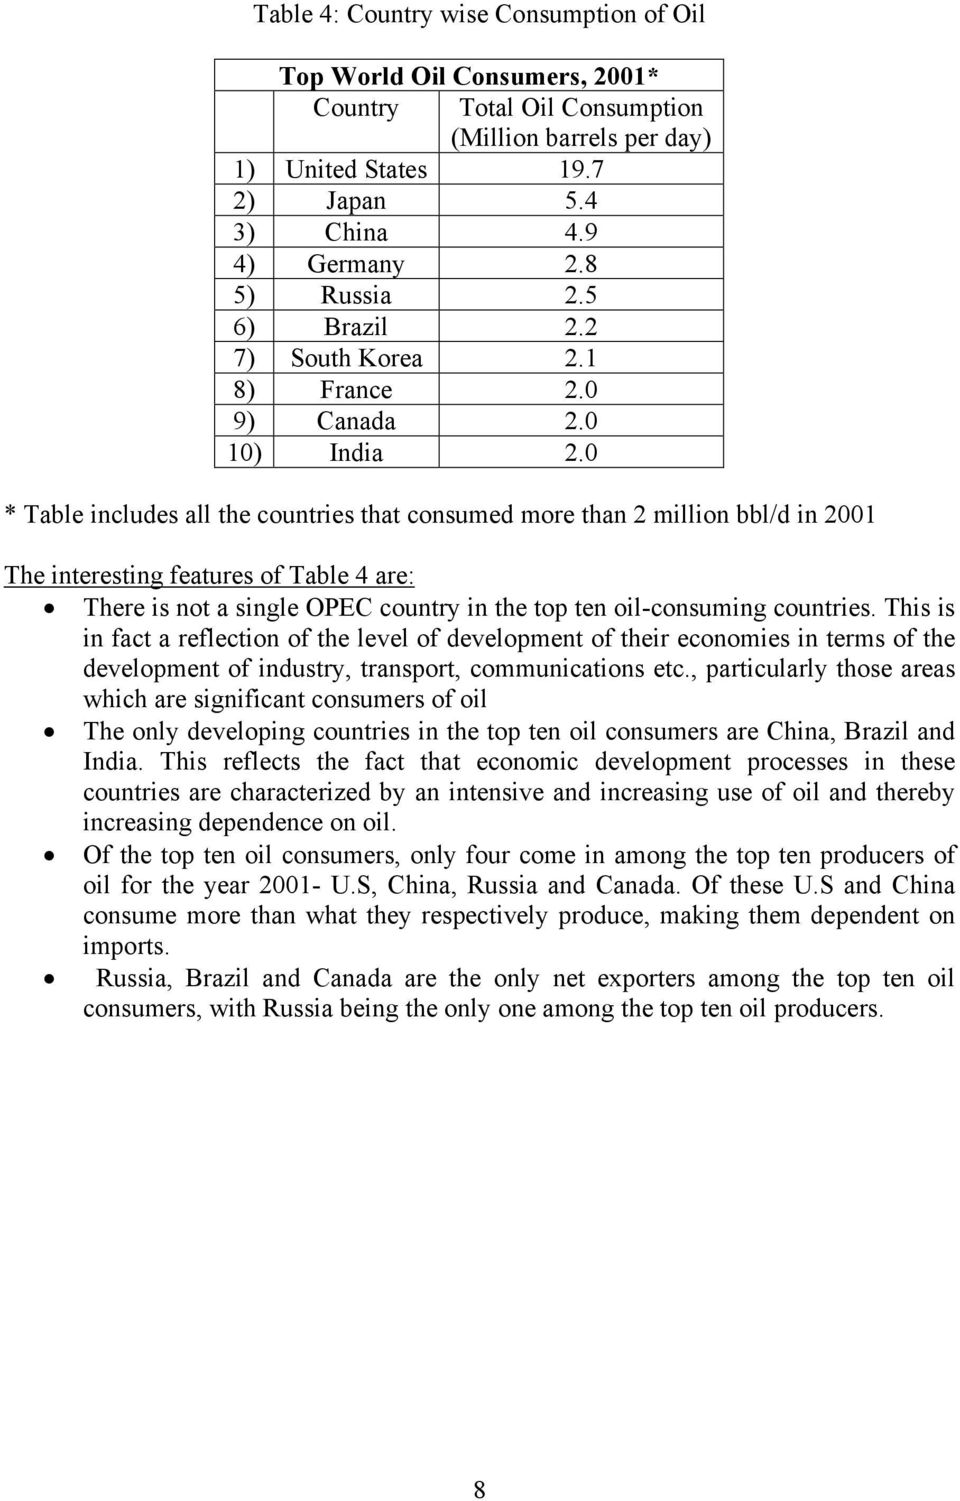 0 * Table includes all the countries that consumed more than 2 million bbl/d in 2001 The interesting features of Table 4 are: There is not a single OPEC country in the top ten oil-consuming countries.